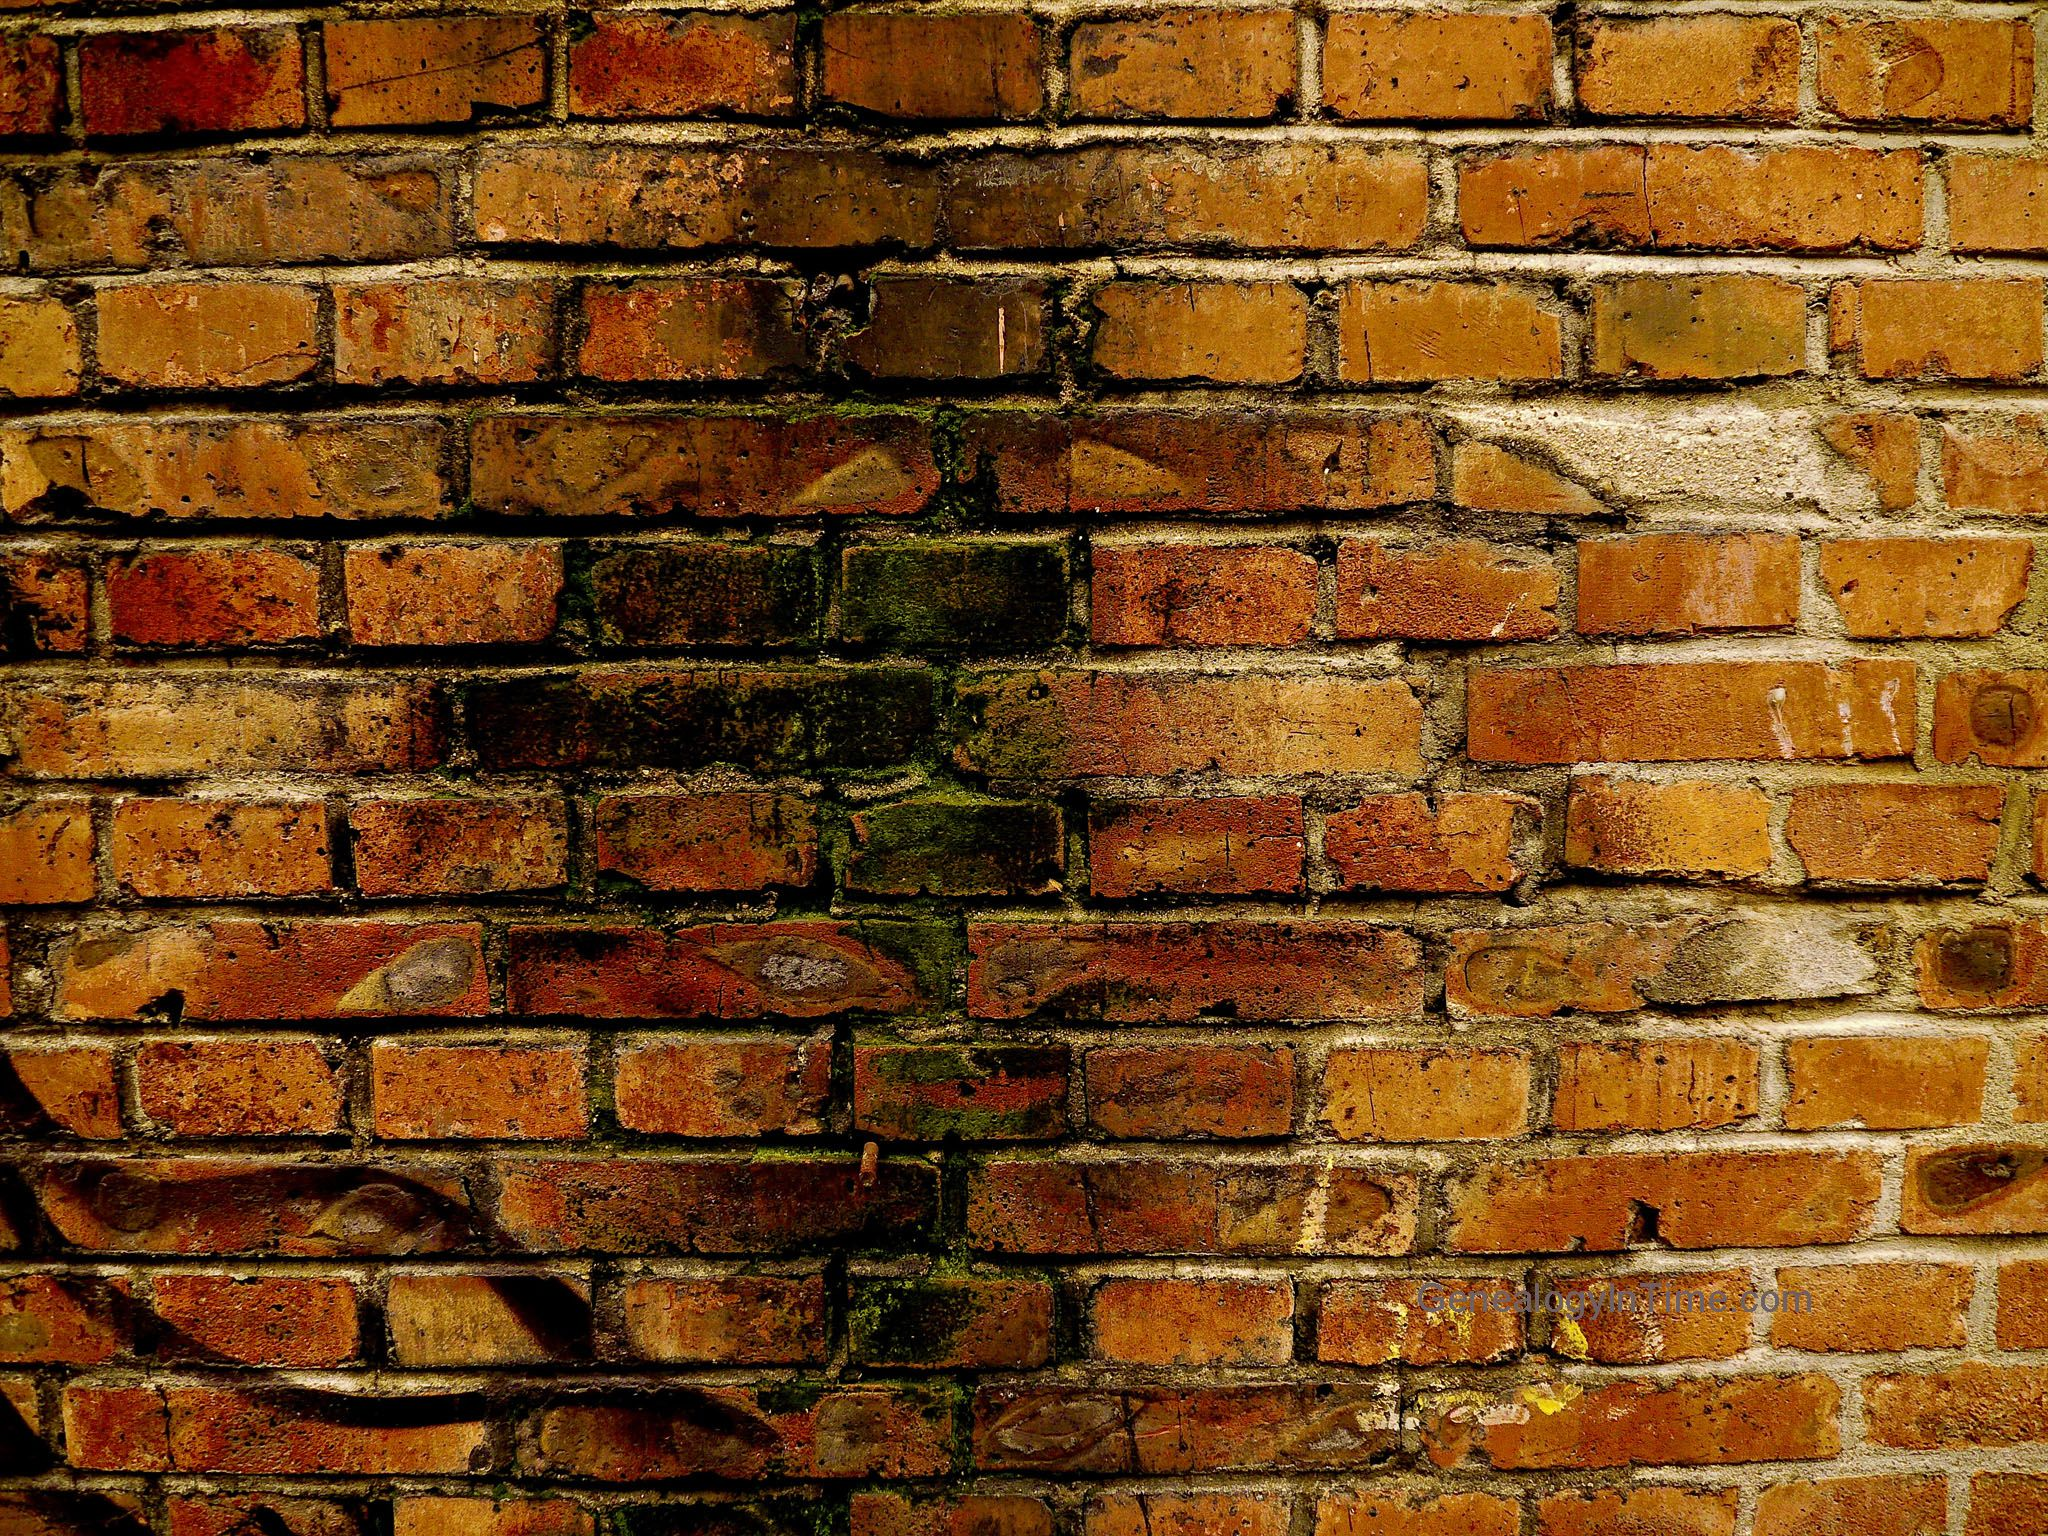 Old Brick Wall Patterns Antique Wallpapers Brick Wallpaper Old Bricks Brick Wall